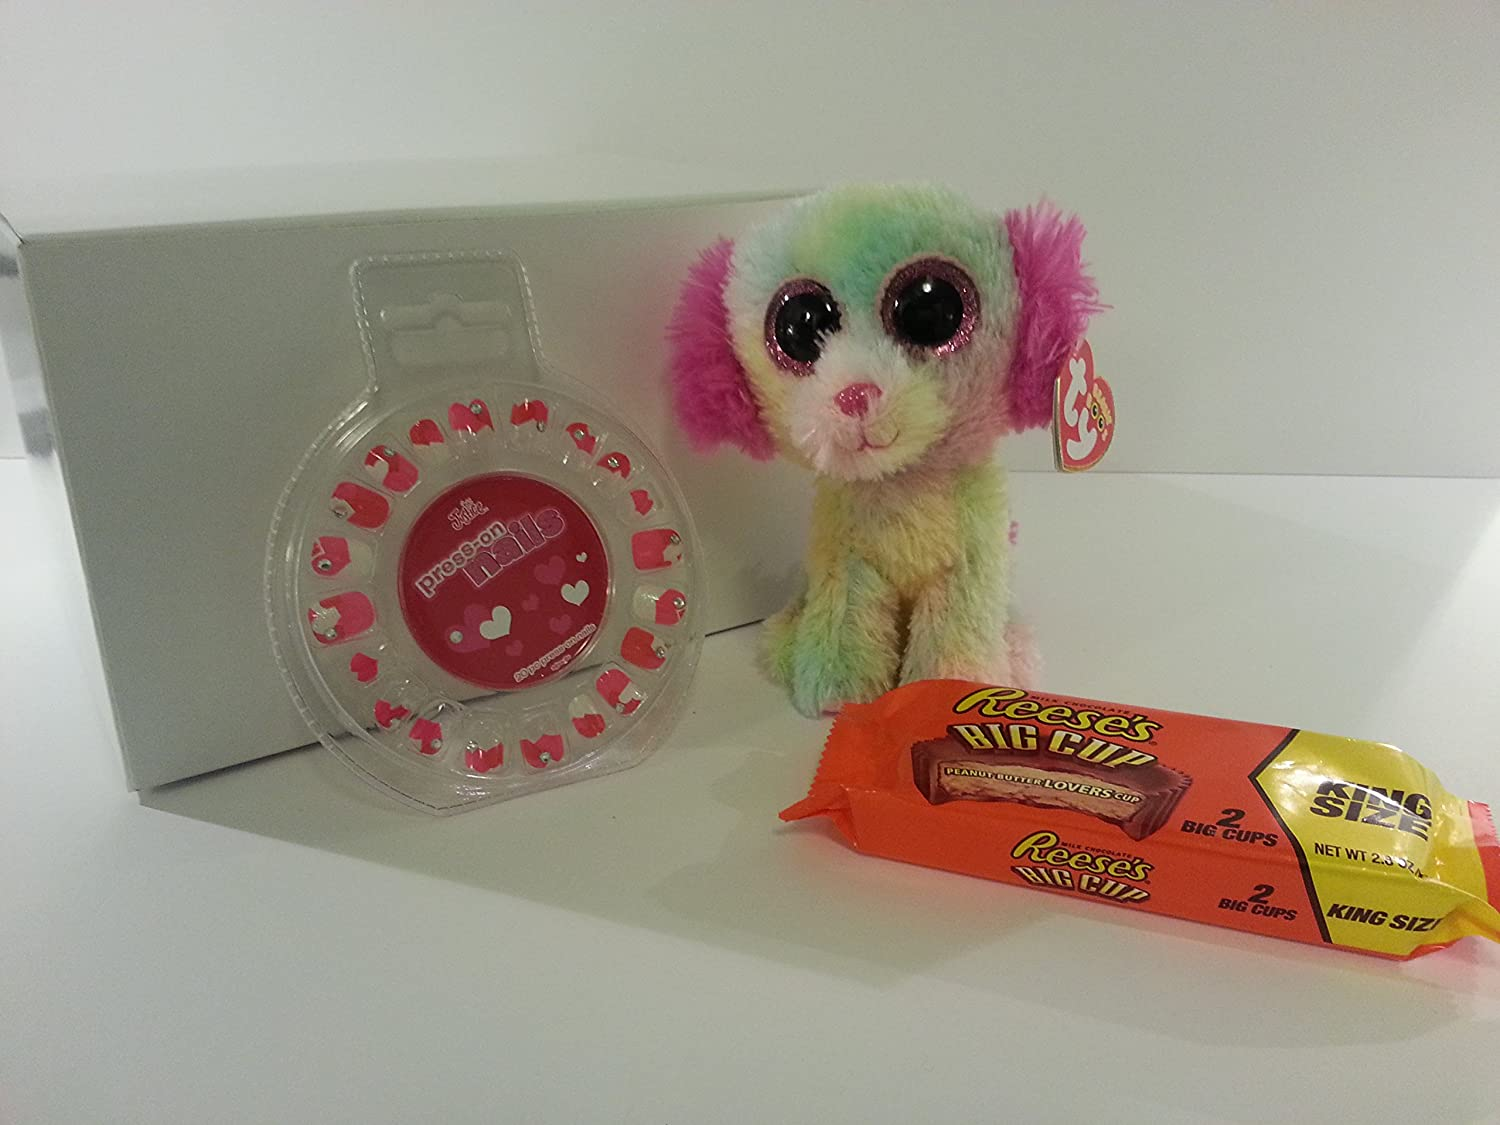 Best Easter Gift Set Heart Sparkle Press-on Nails by Justice, Plush Dog Ty Beanie Boos, A Pack of 2 Reese's Big Cups and Glossy White Gift Box